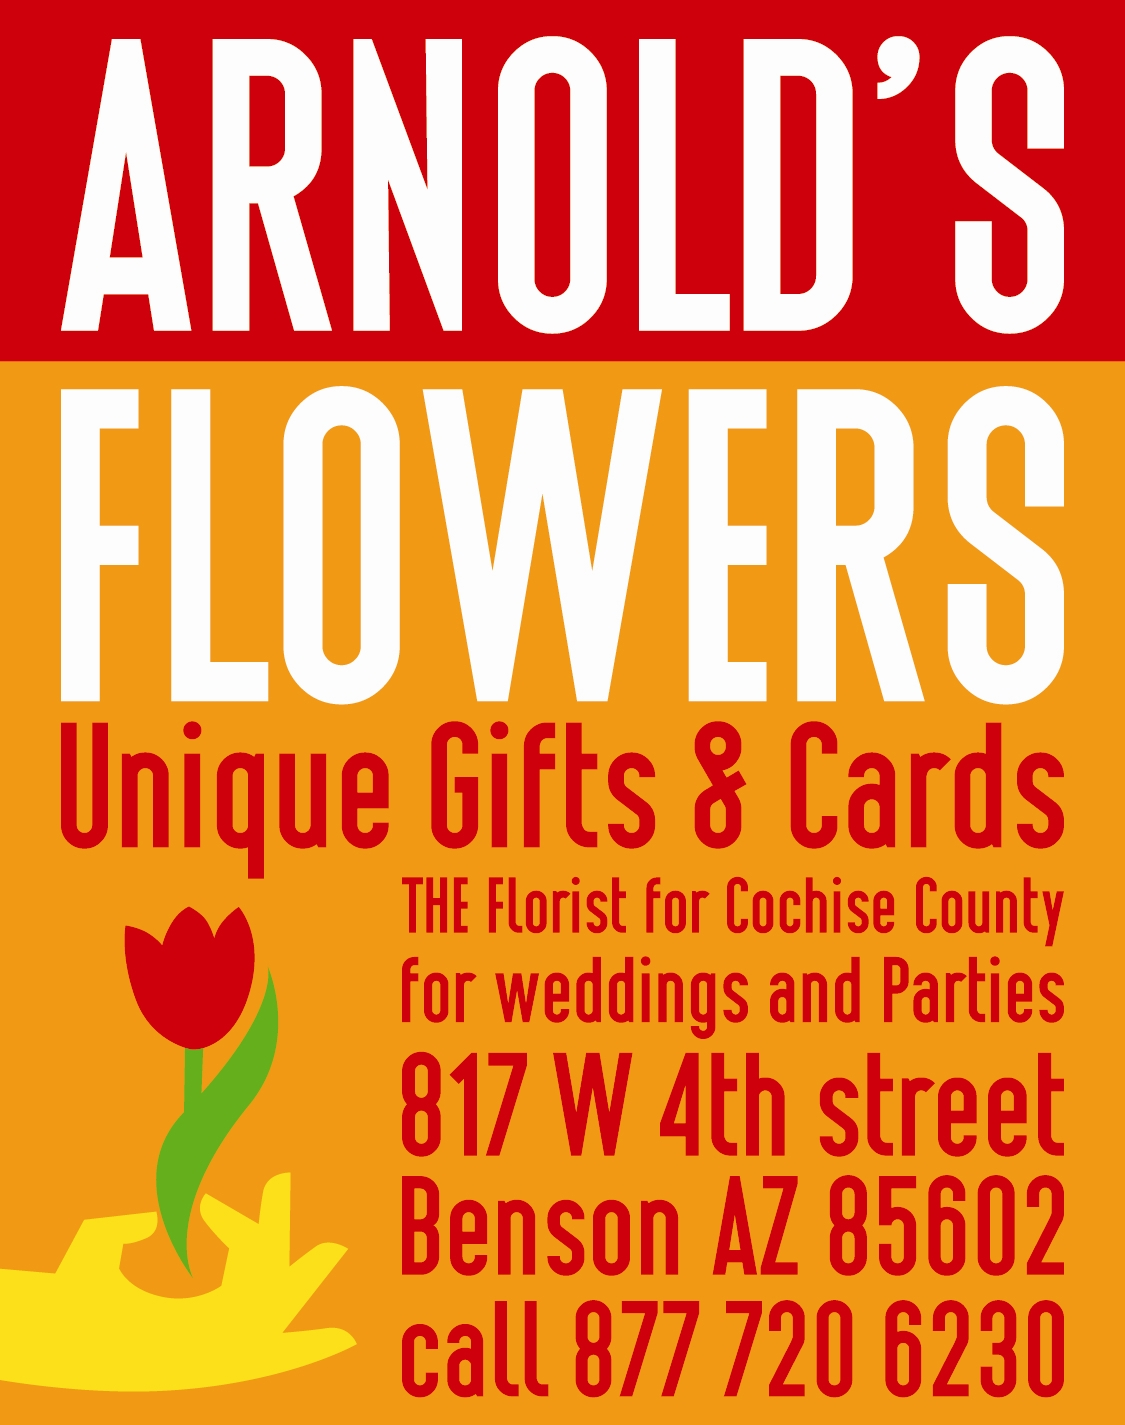 Arnolds Flowers & Gifts